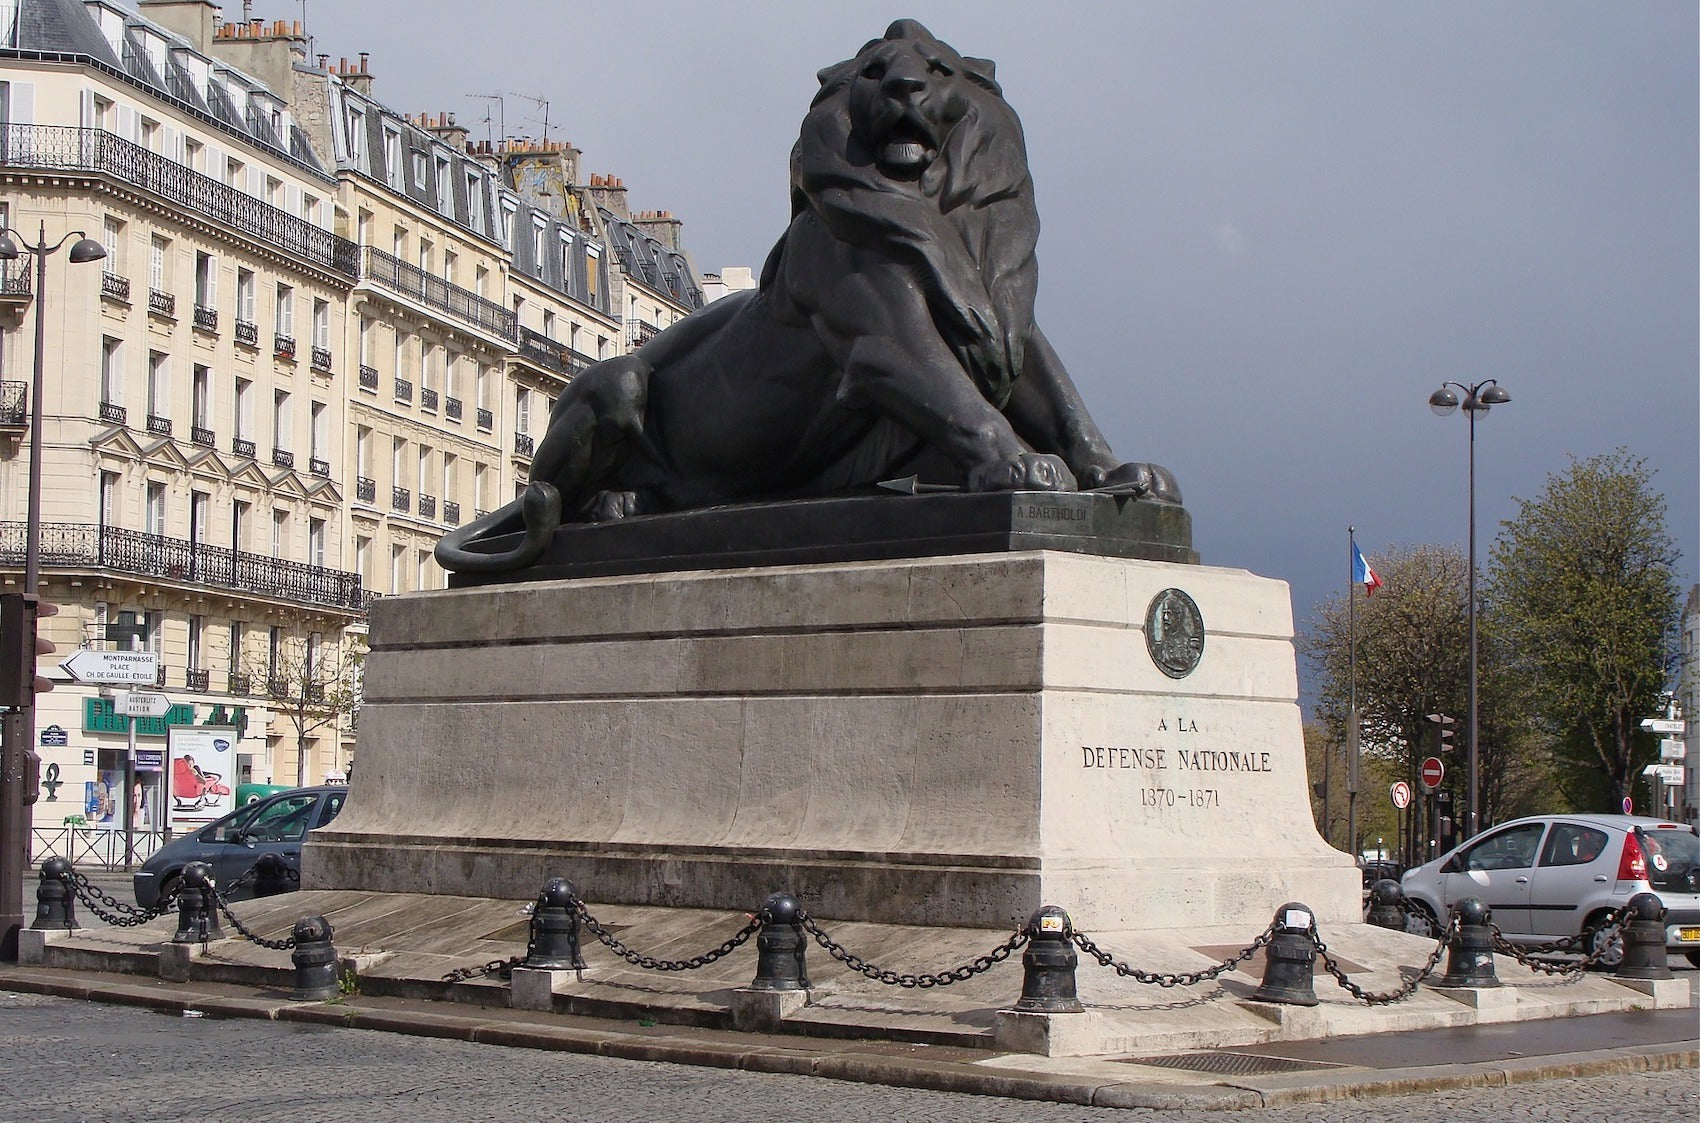 Statue Lion sur la place Denfert-Richereau à Paris